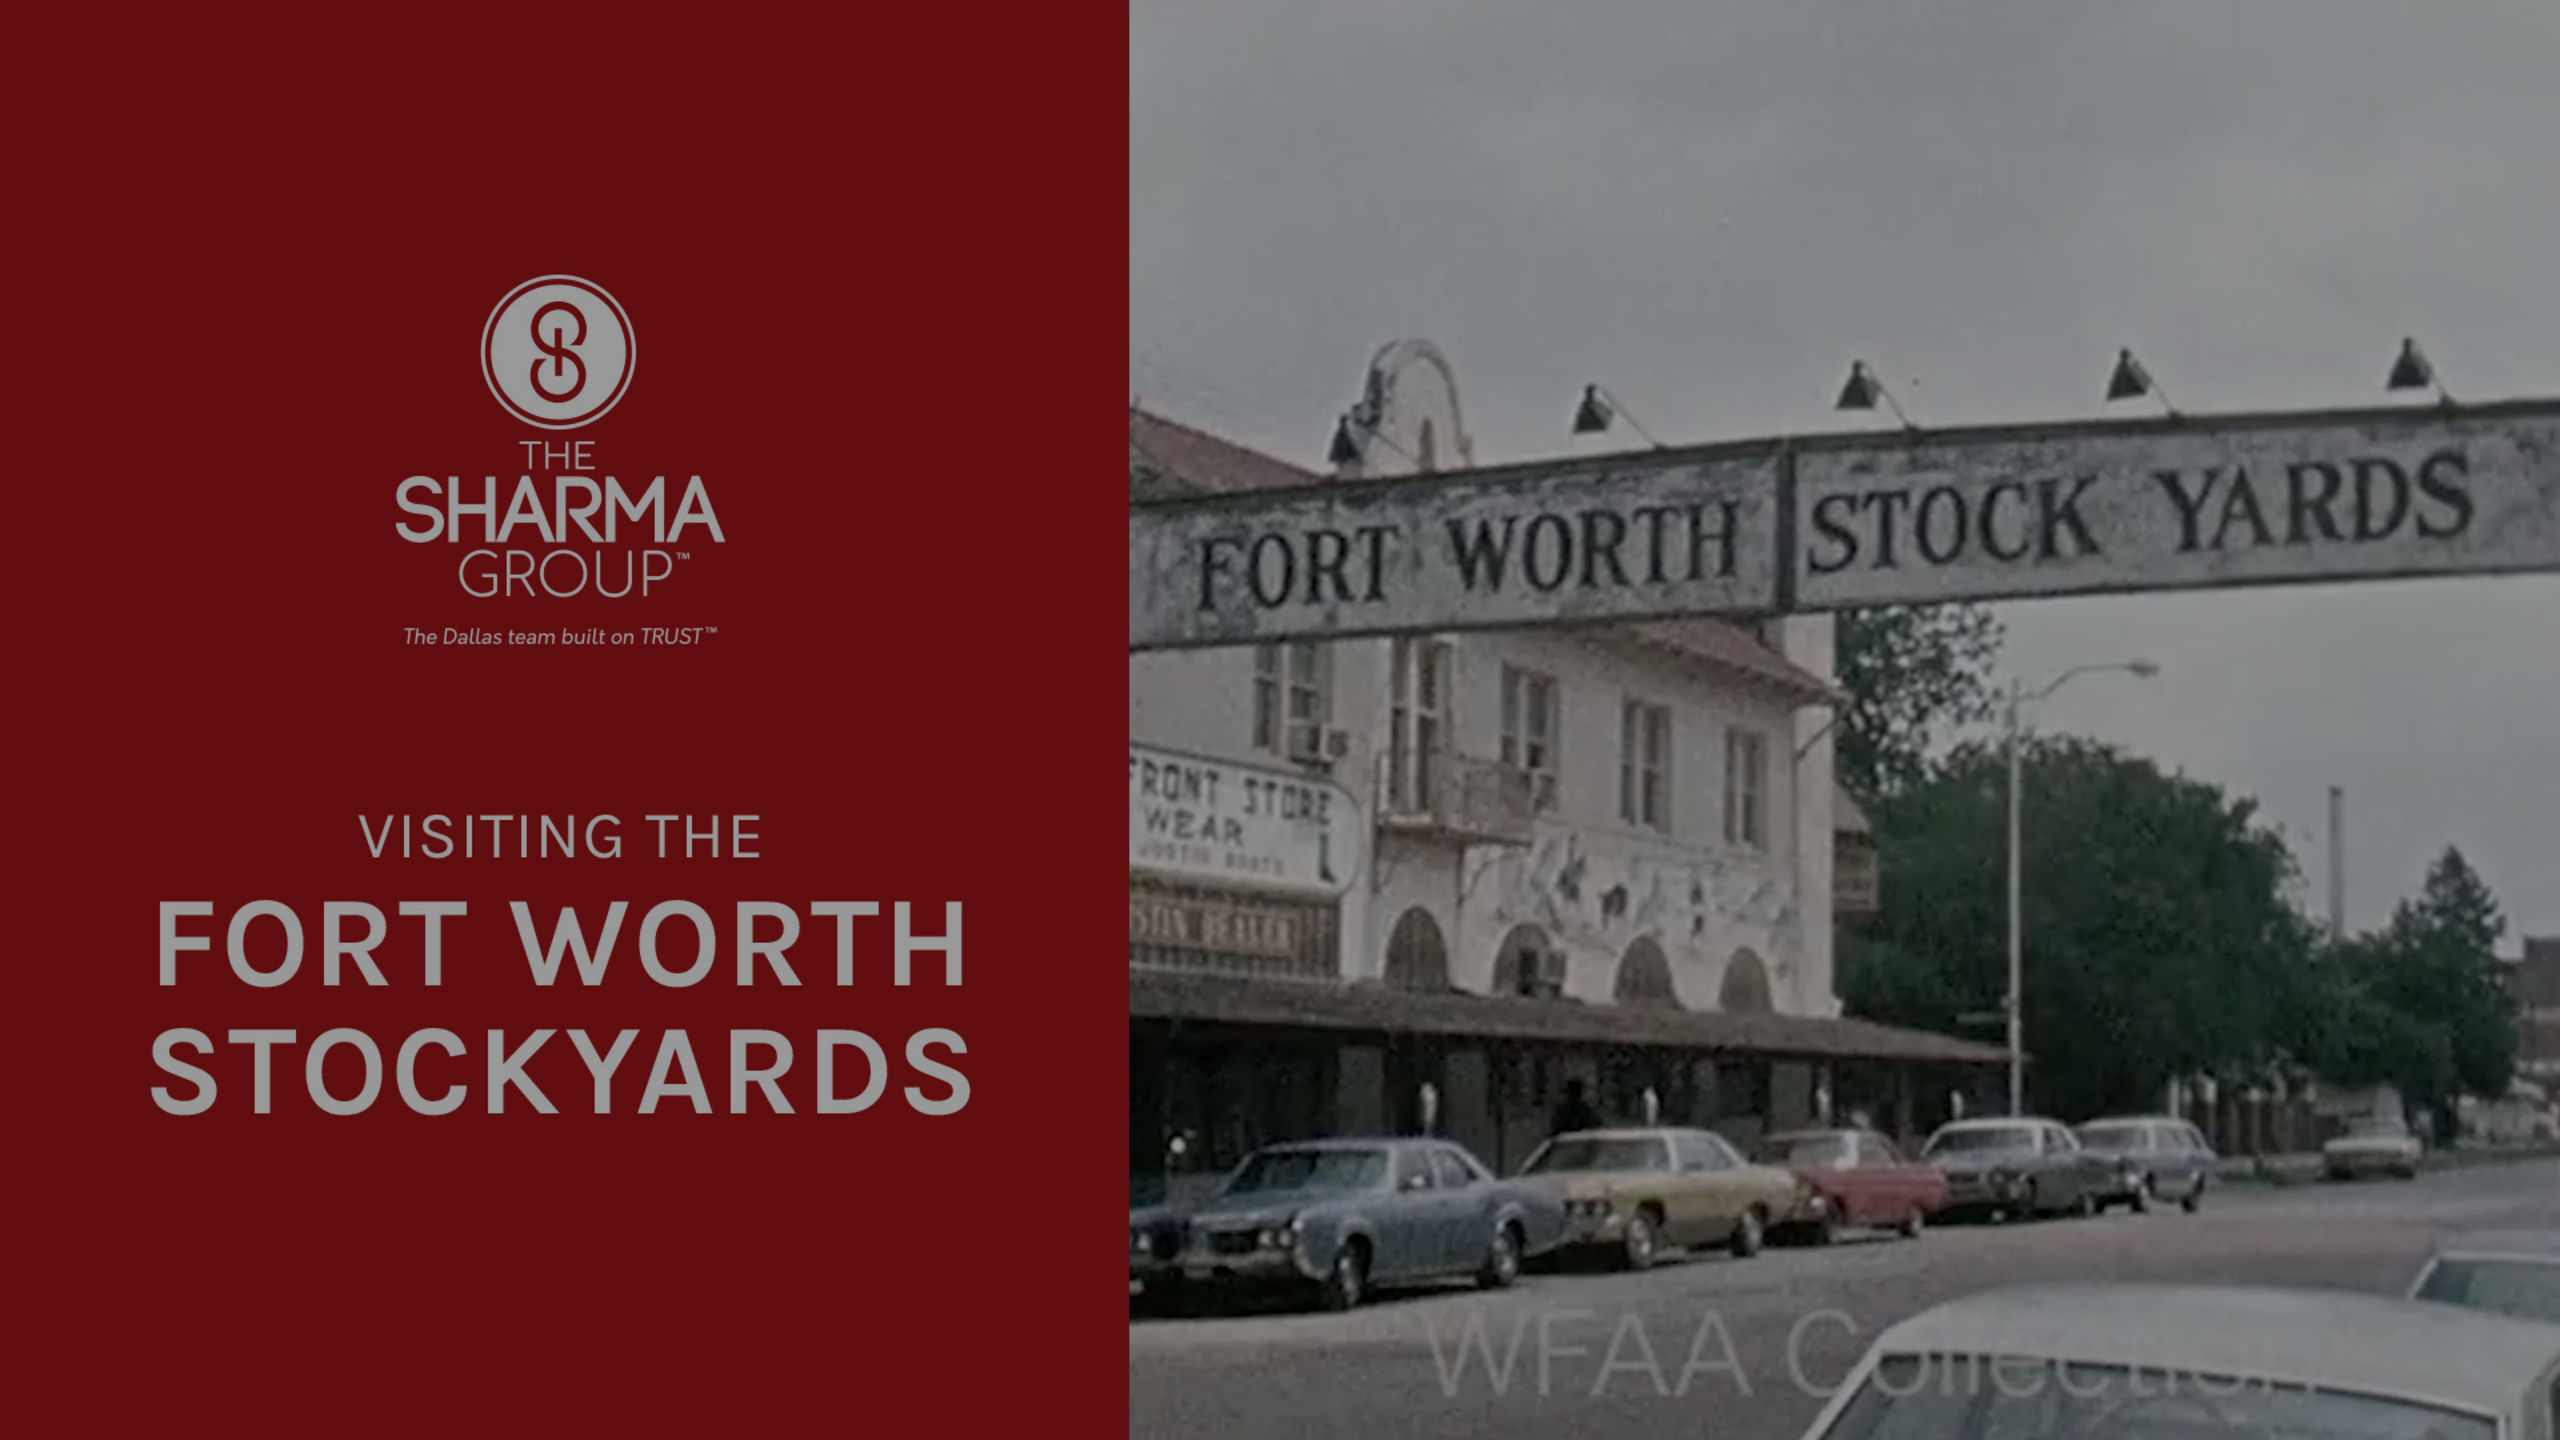 Fort Worth Stockyards | The Sharma Group